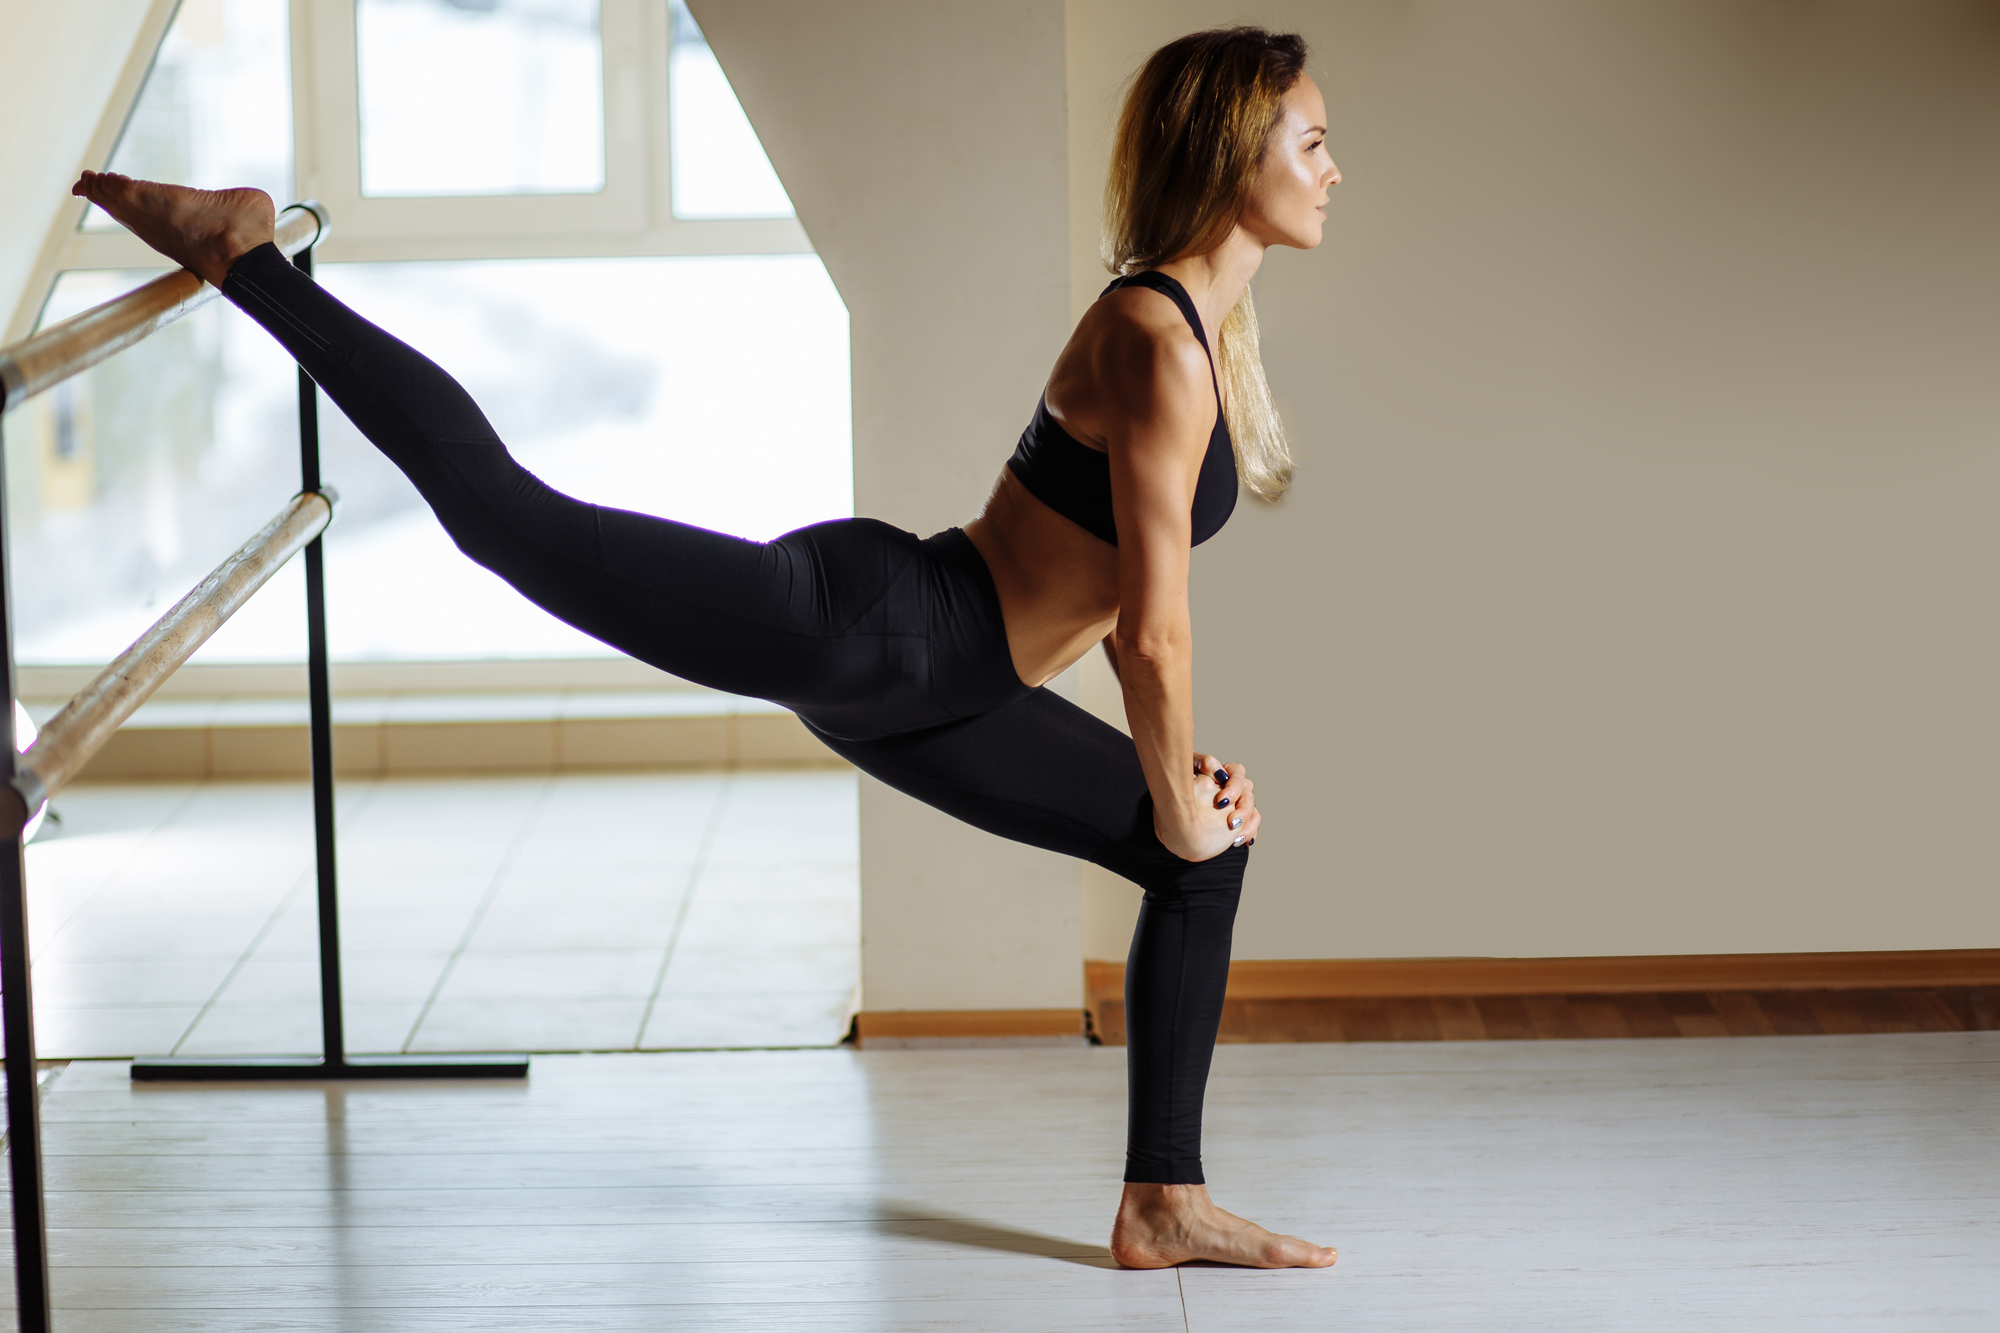 A femme-presenting person in a thin body with long blonde hair stretching one leg behind her in a half split on a barre